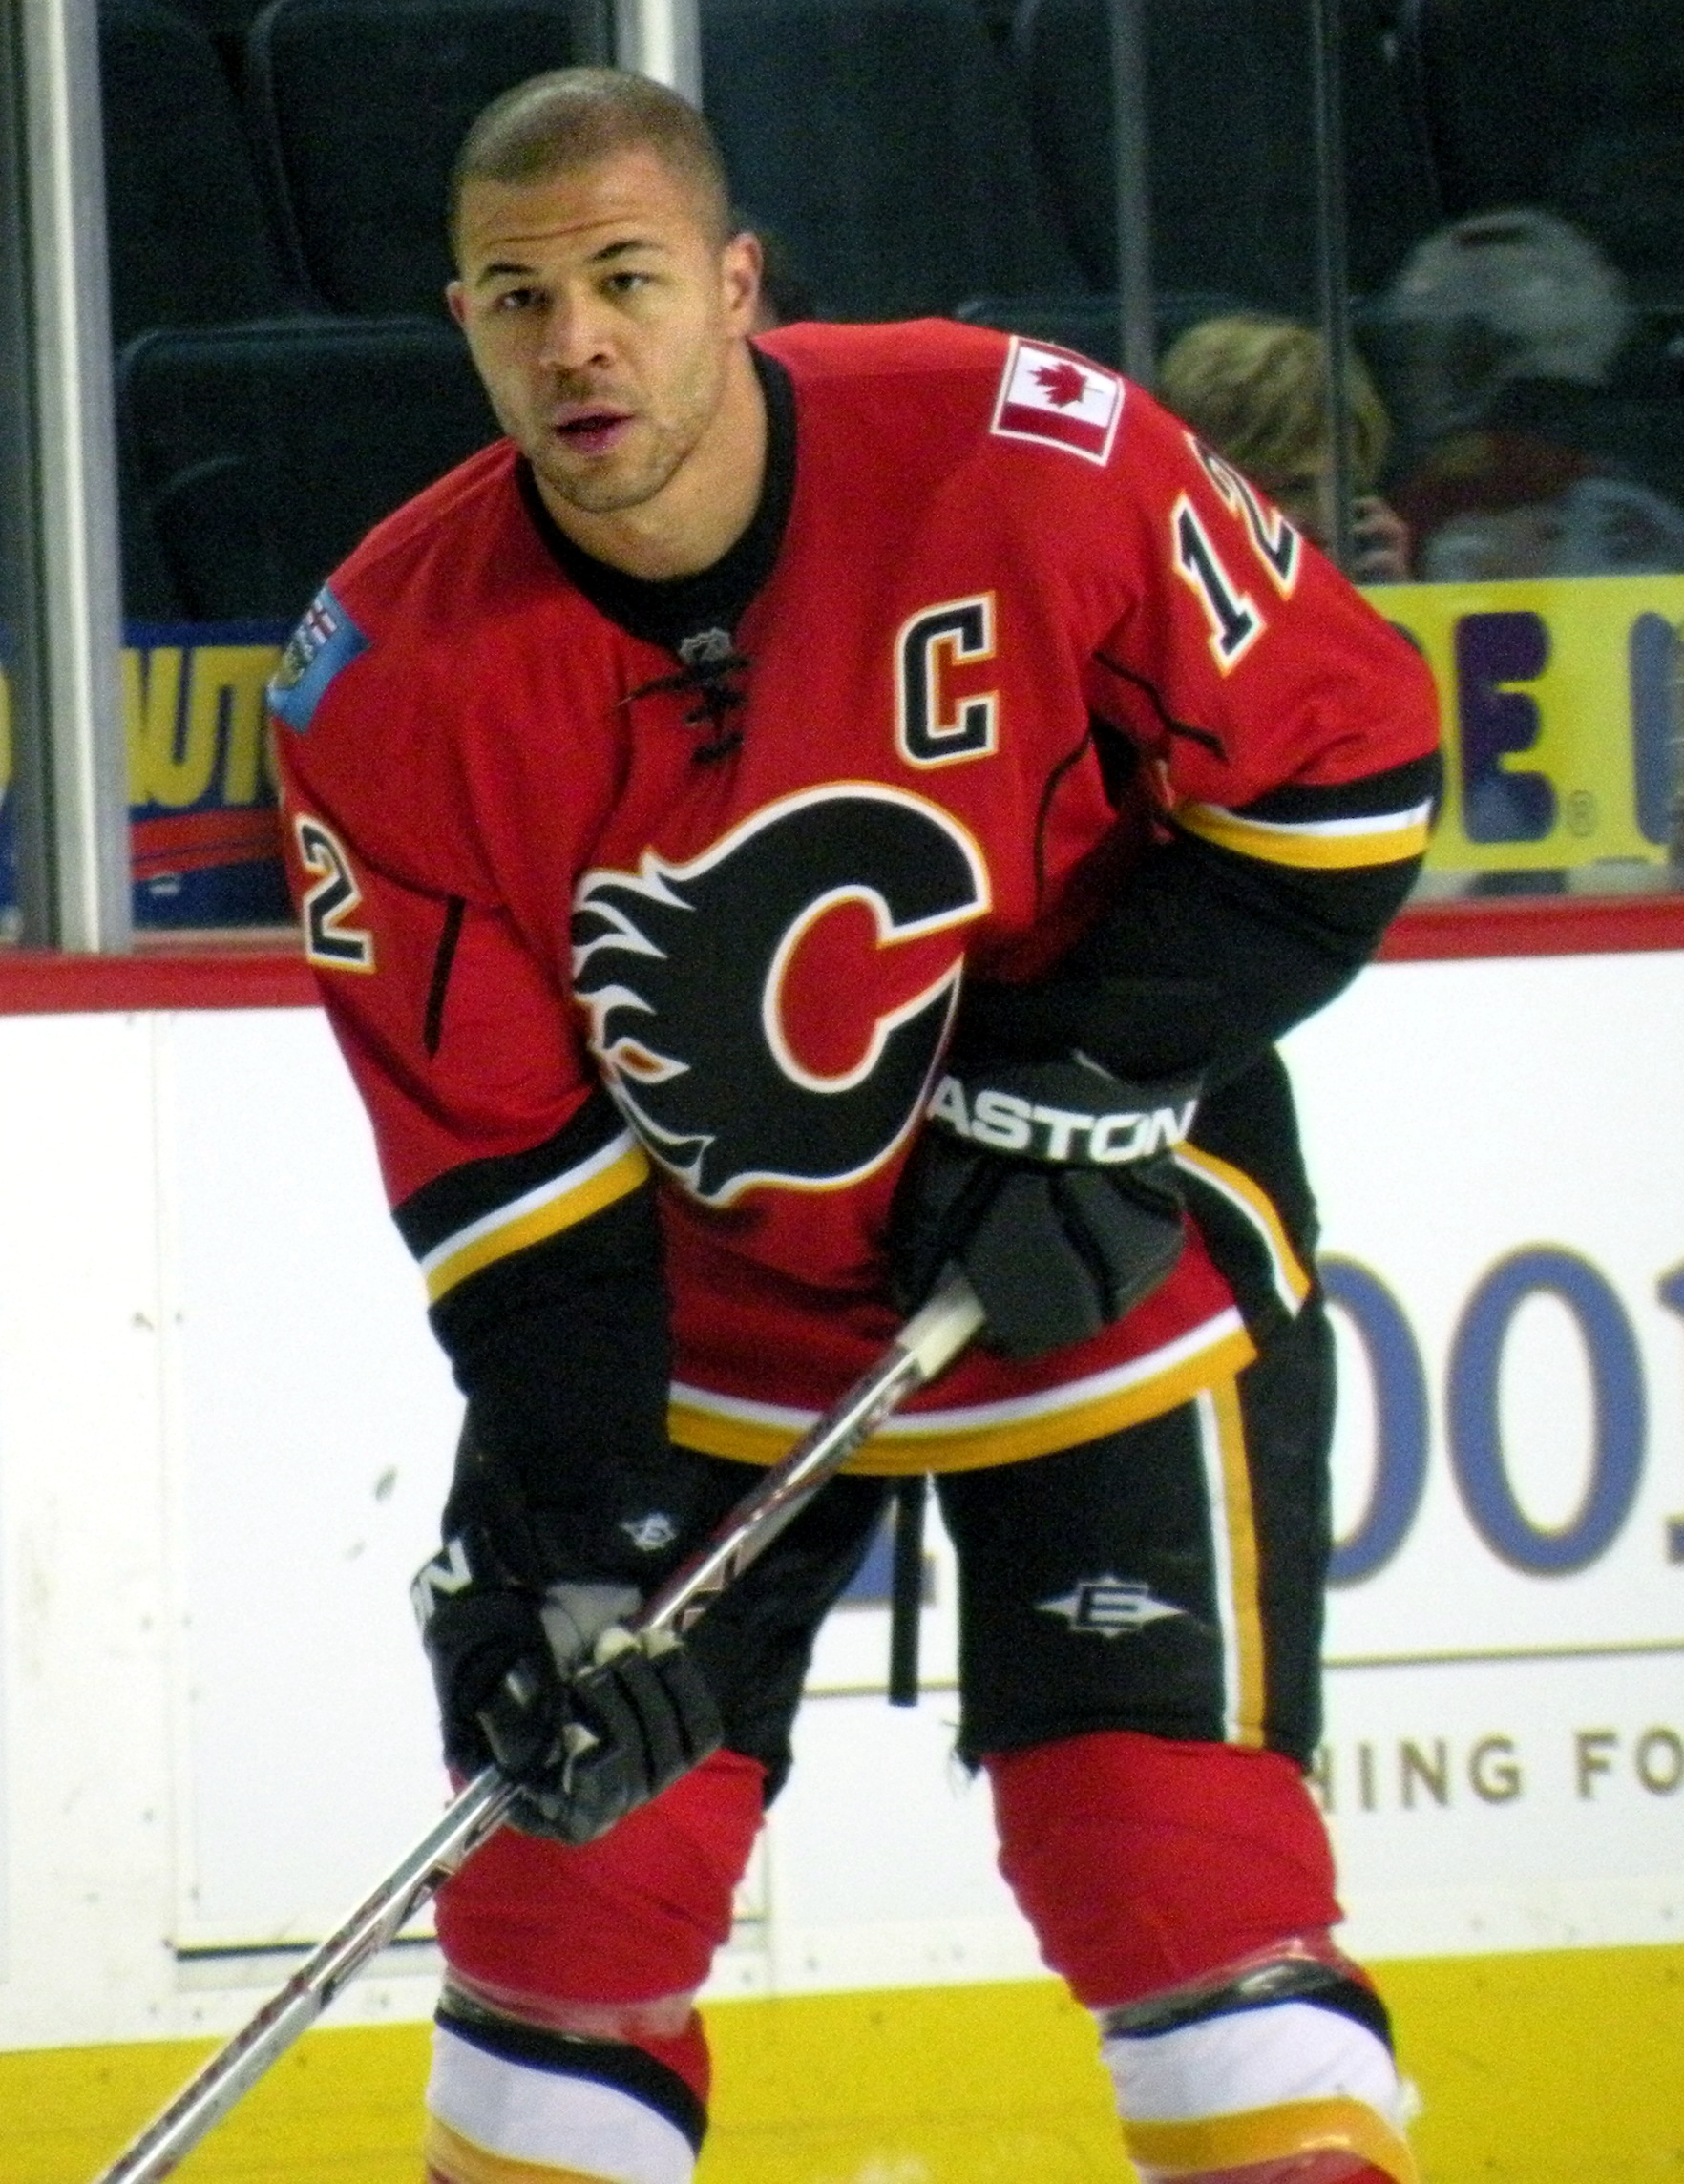 Jarome Iginla - Ice hockey player from St. Albert, Alberta